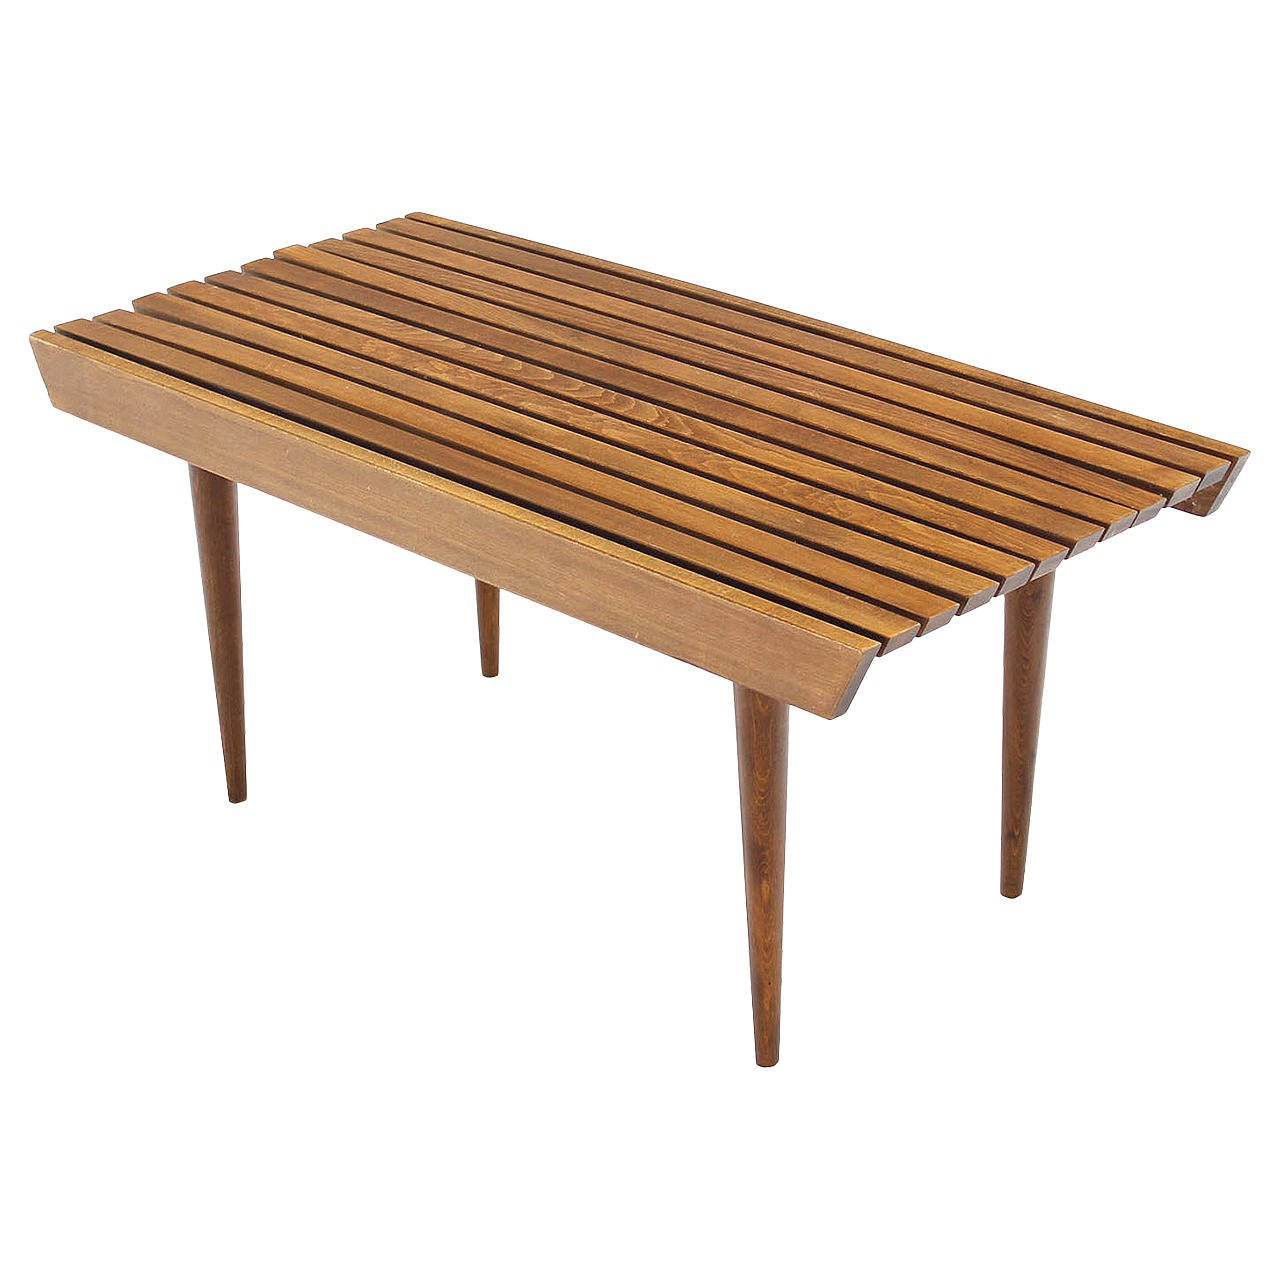 Mid Century Solid Wood Small Platform Slat Bench Or Coffee: Danish Modern Slat Wood Bench At 1stdibs